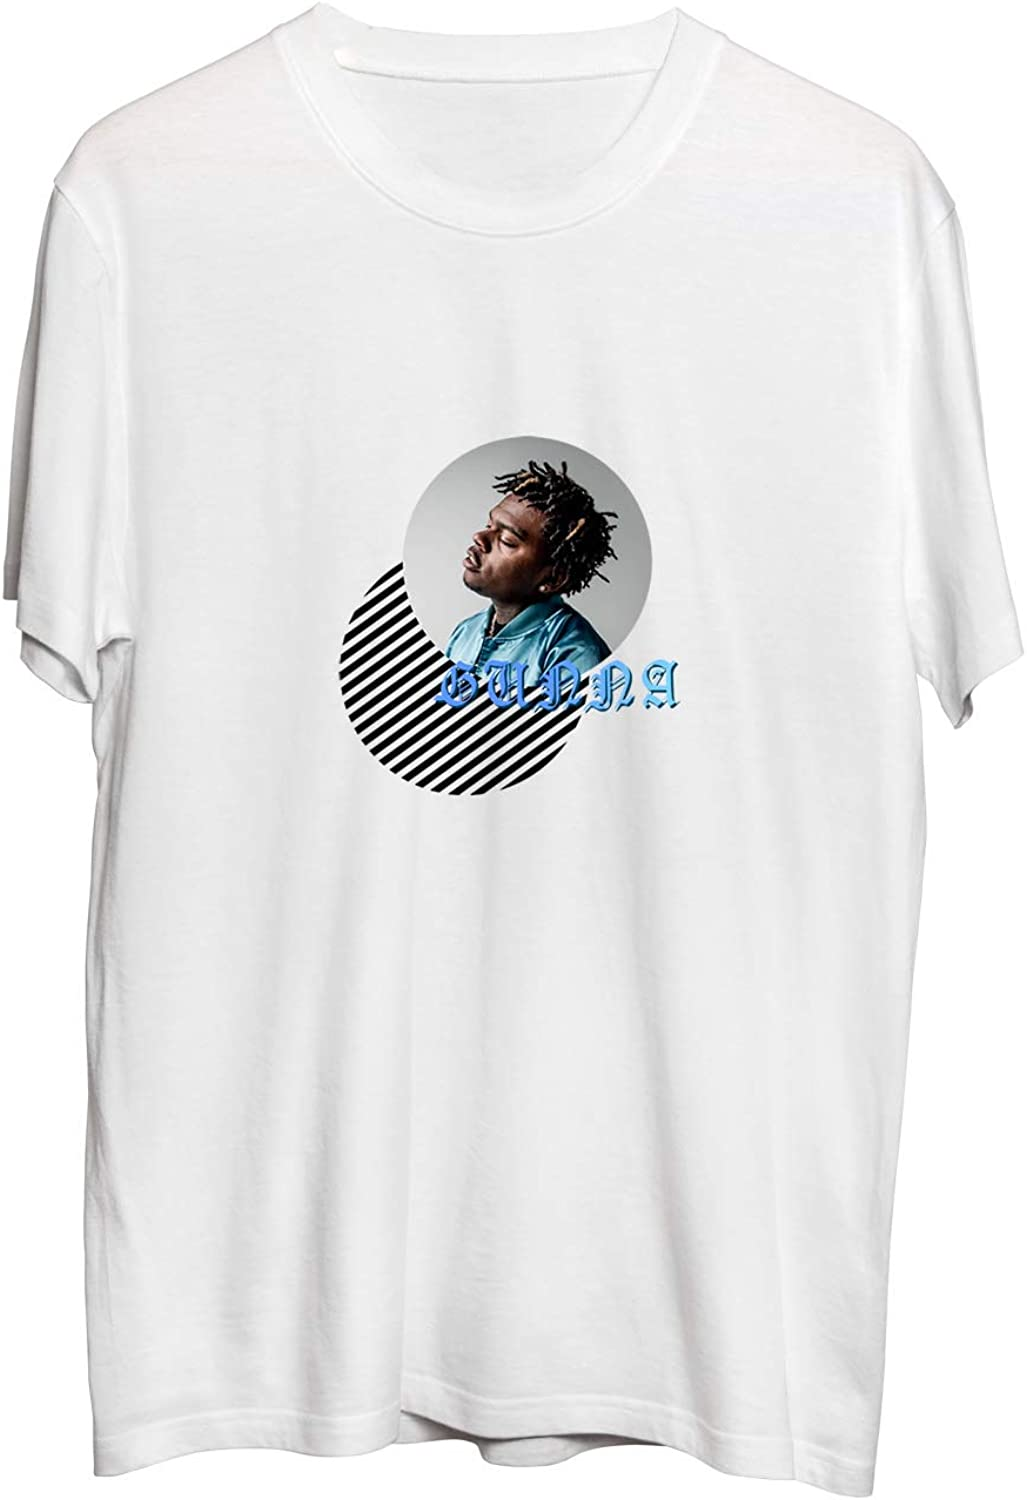 MTNACLOTHING Gunna Rap Music Legend Face_MA0413 T-Shirt Shirt For ...